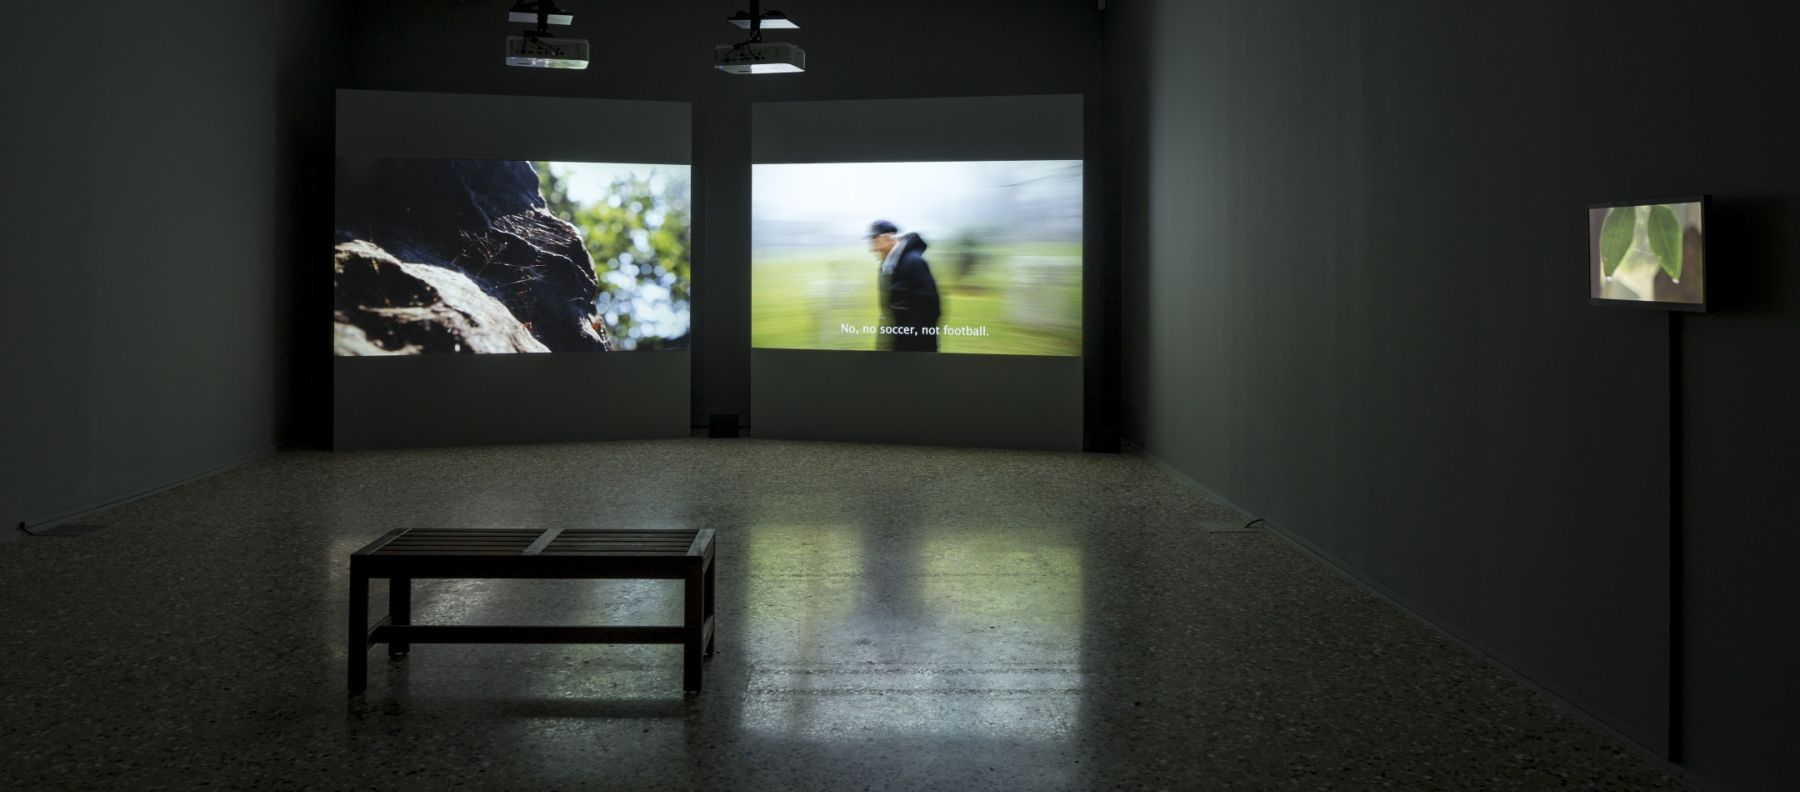 Large Image (installation view 2)